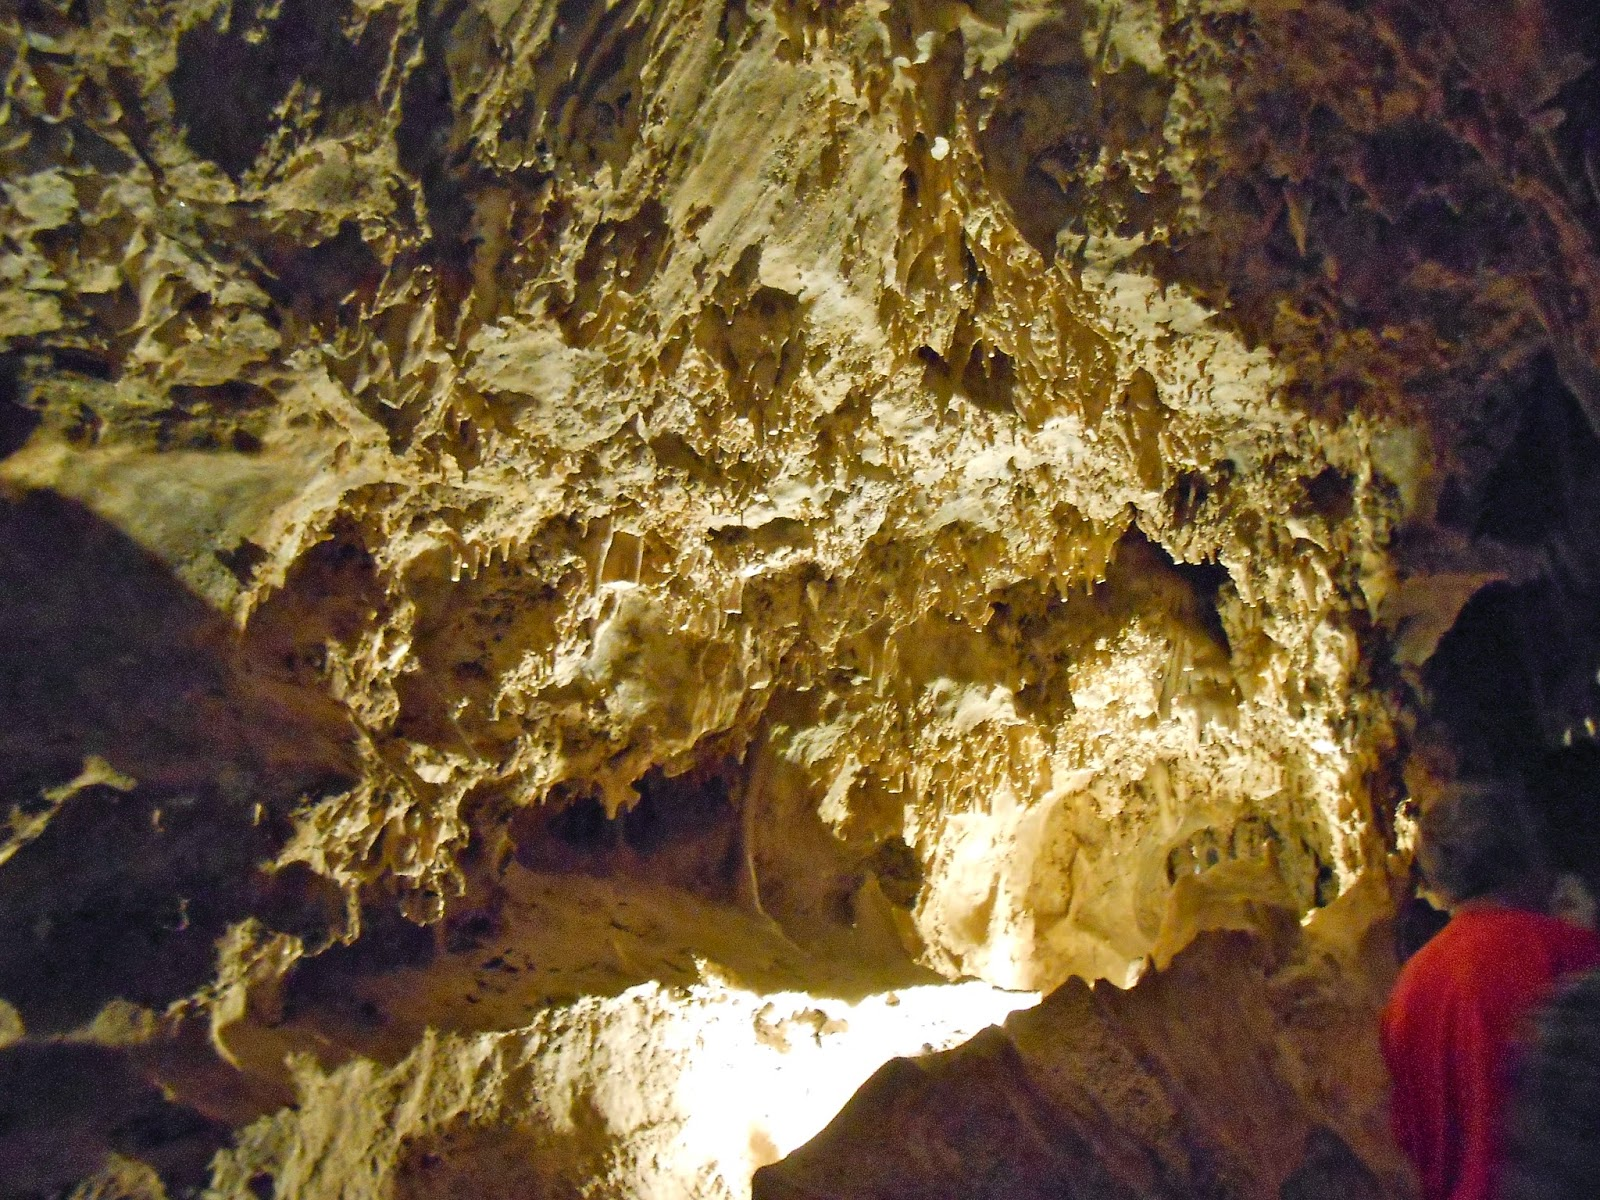 inside colossal cave tucson arizona tours